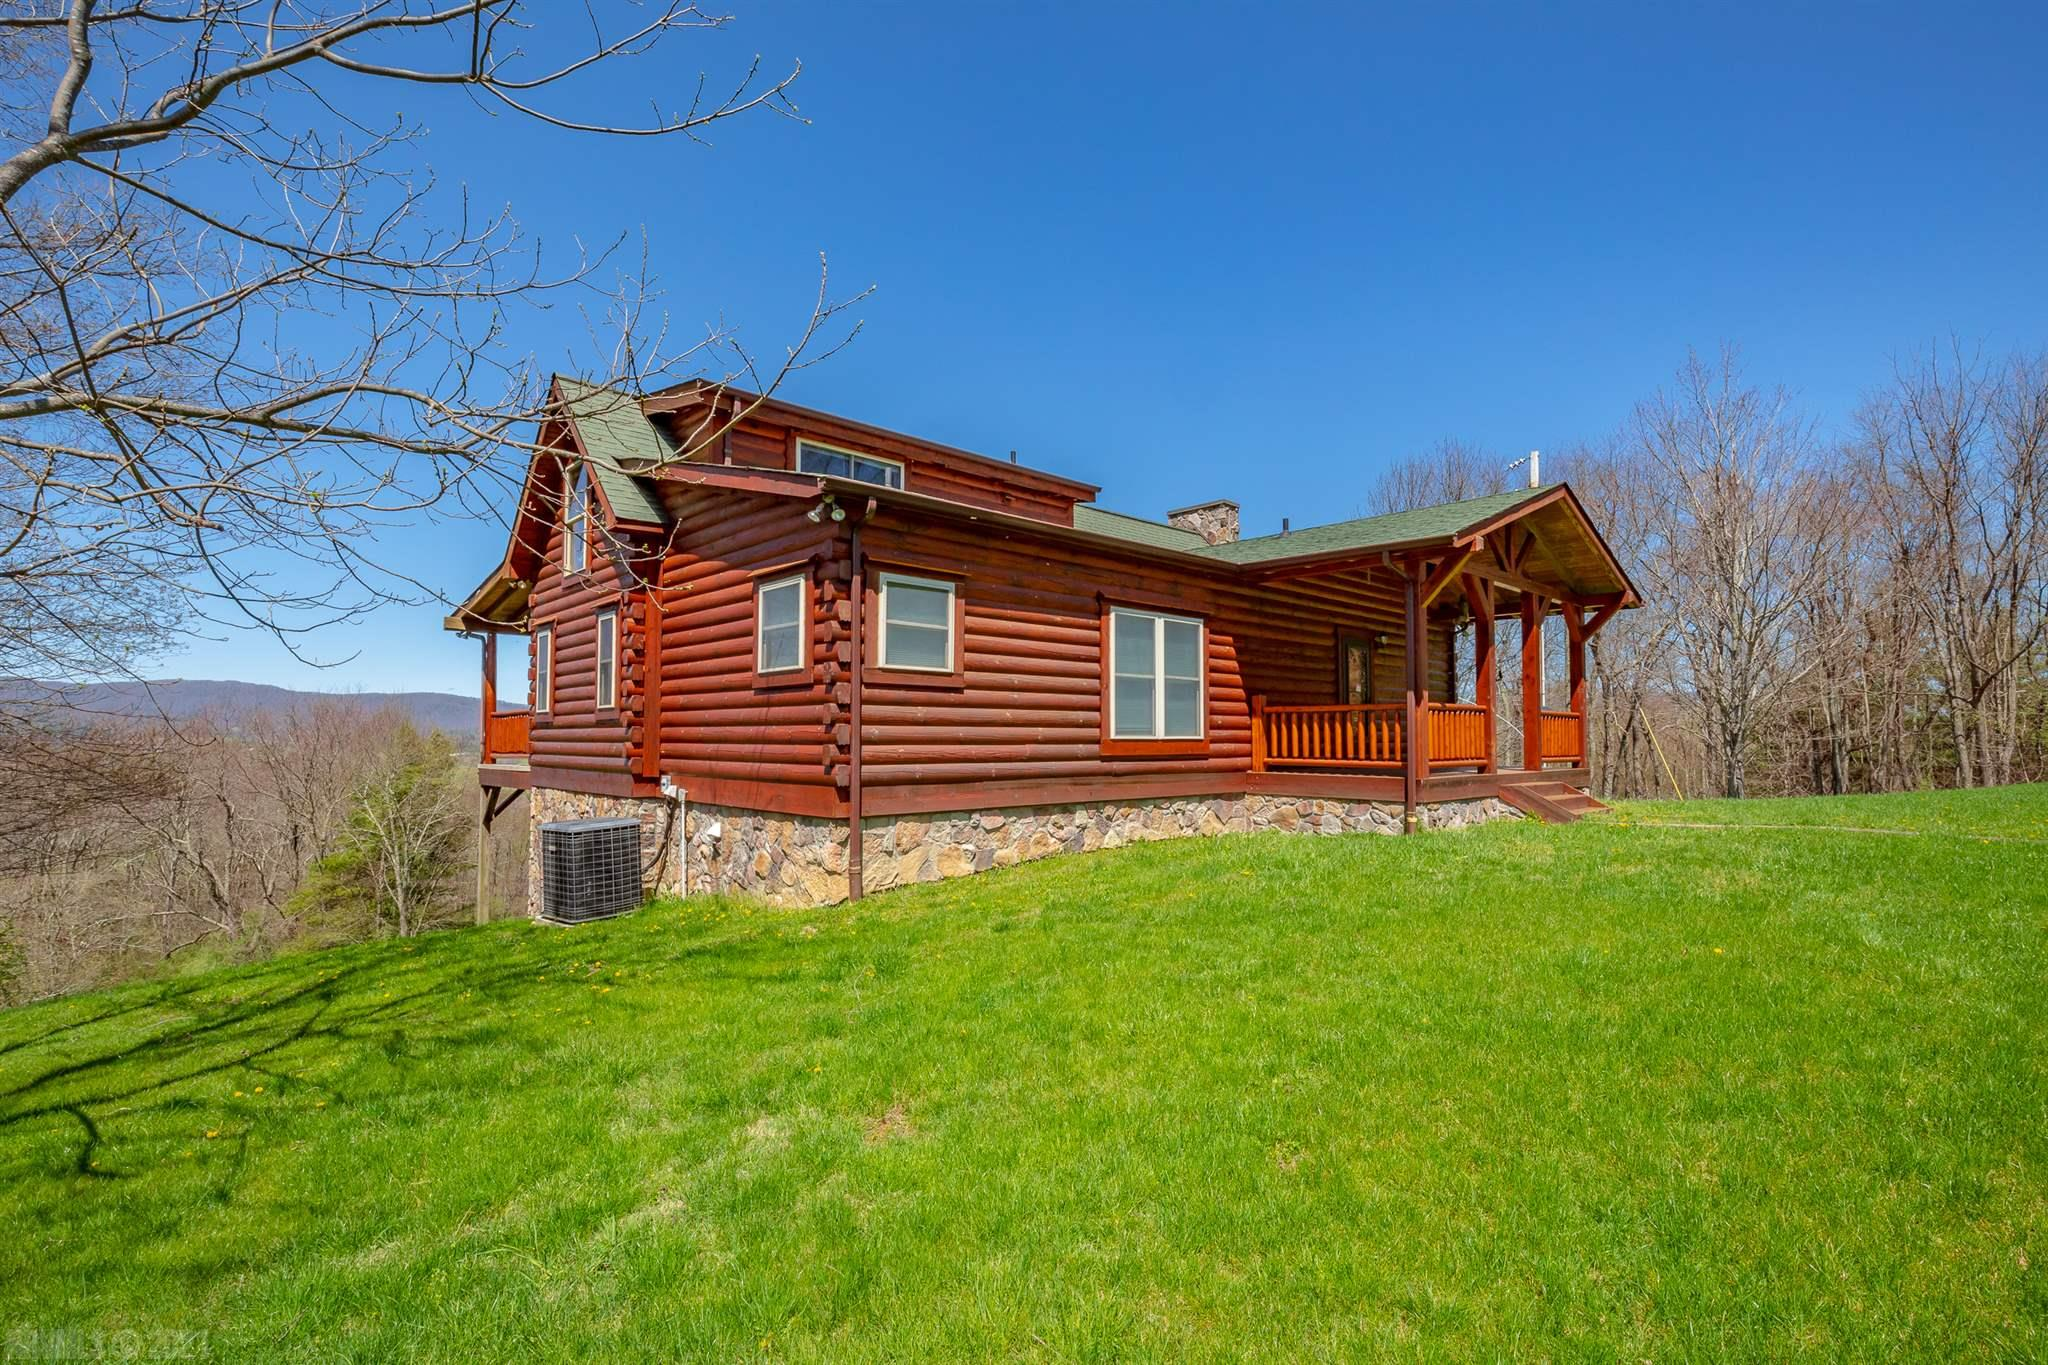 You will not find a more secluded home on the market! This cabin sits right in the middle of over 71 acres. The views here are stunning. This place is a hunter's paradise. There are many permanent hunting stands on the property, as well as lock on ladder stands, and an abundant amount of feed plots and apple trees. The cabin itself is extremely well built. Every block has poured concrete in the foundation. You have an open floor plan through the main level, with everything you need. The basement is ready to be finished as well, if more square footage is desired. There is framing in place for windows and doors, as well as a garage door that's ready to go. You can customize it to your own needs. The 2 potential bedrooms and full bath downstairs are about 80% finished (not counted in the listing). There is a 35X32 structure that's perfect for equipment. There are also 2 small streams and a small pond on the property. You must see this home and explore the property to truly appreciate it!